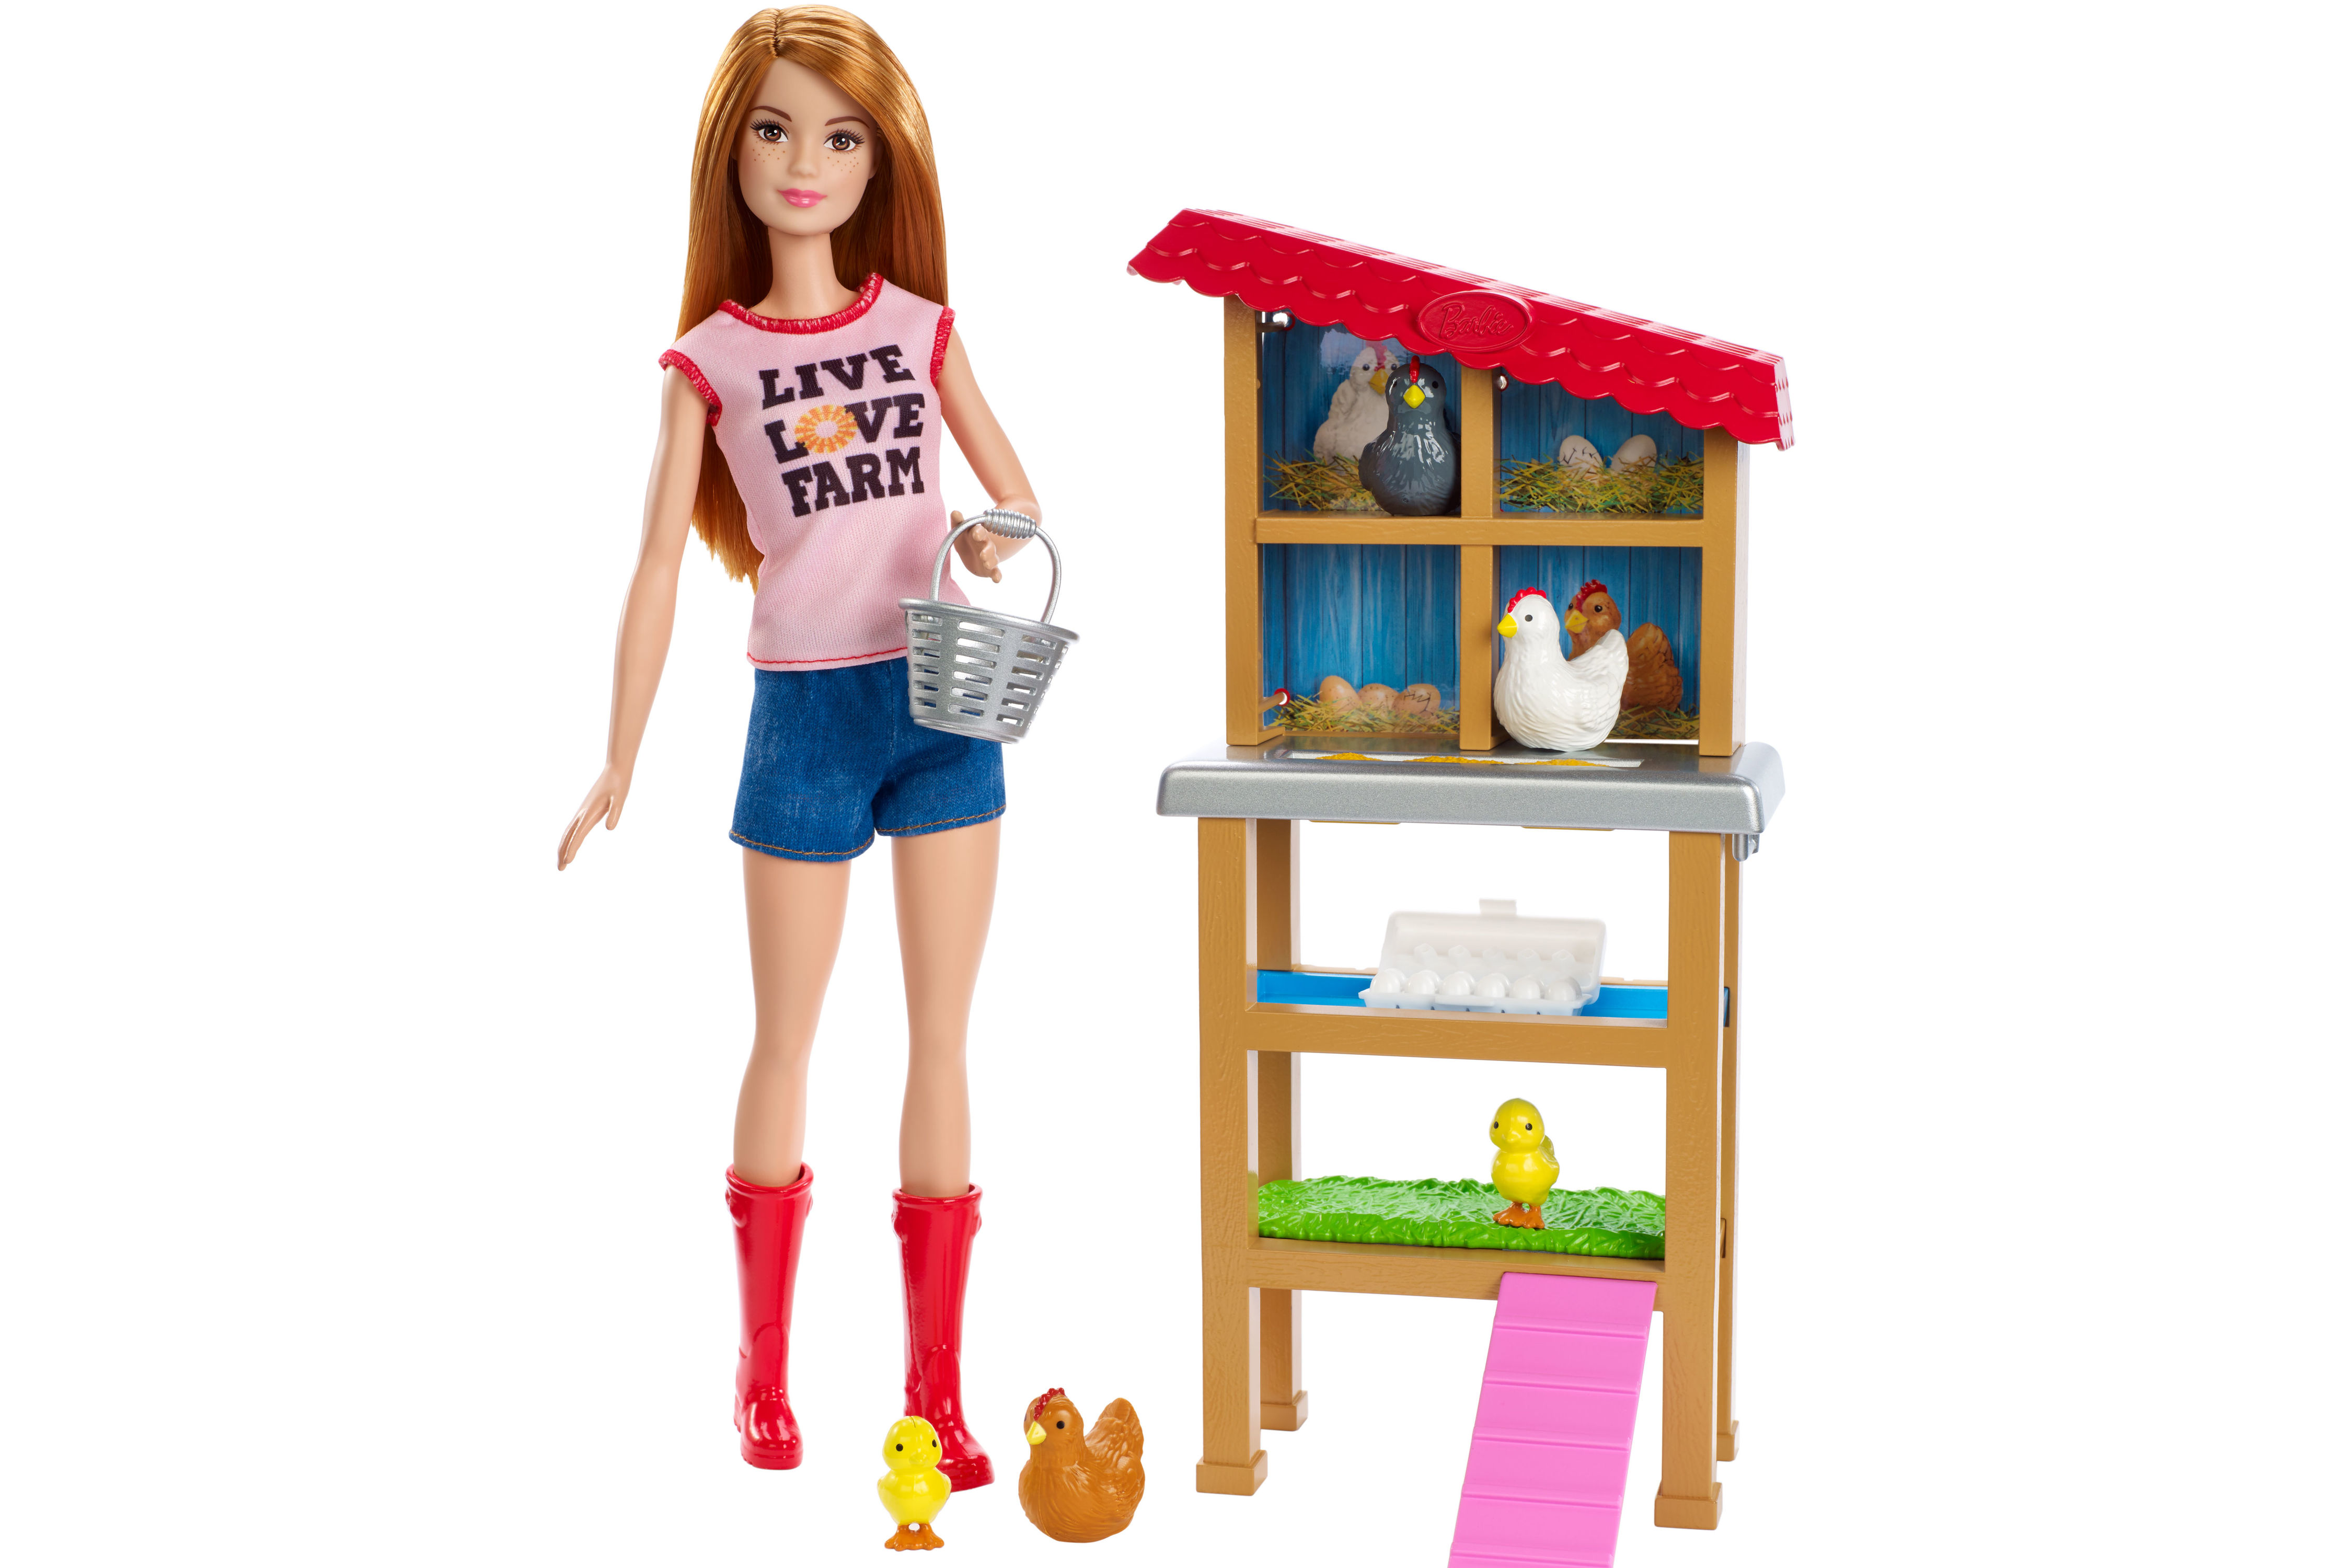 What Do You Think About Barbie as Chicken Farmer?